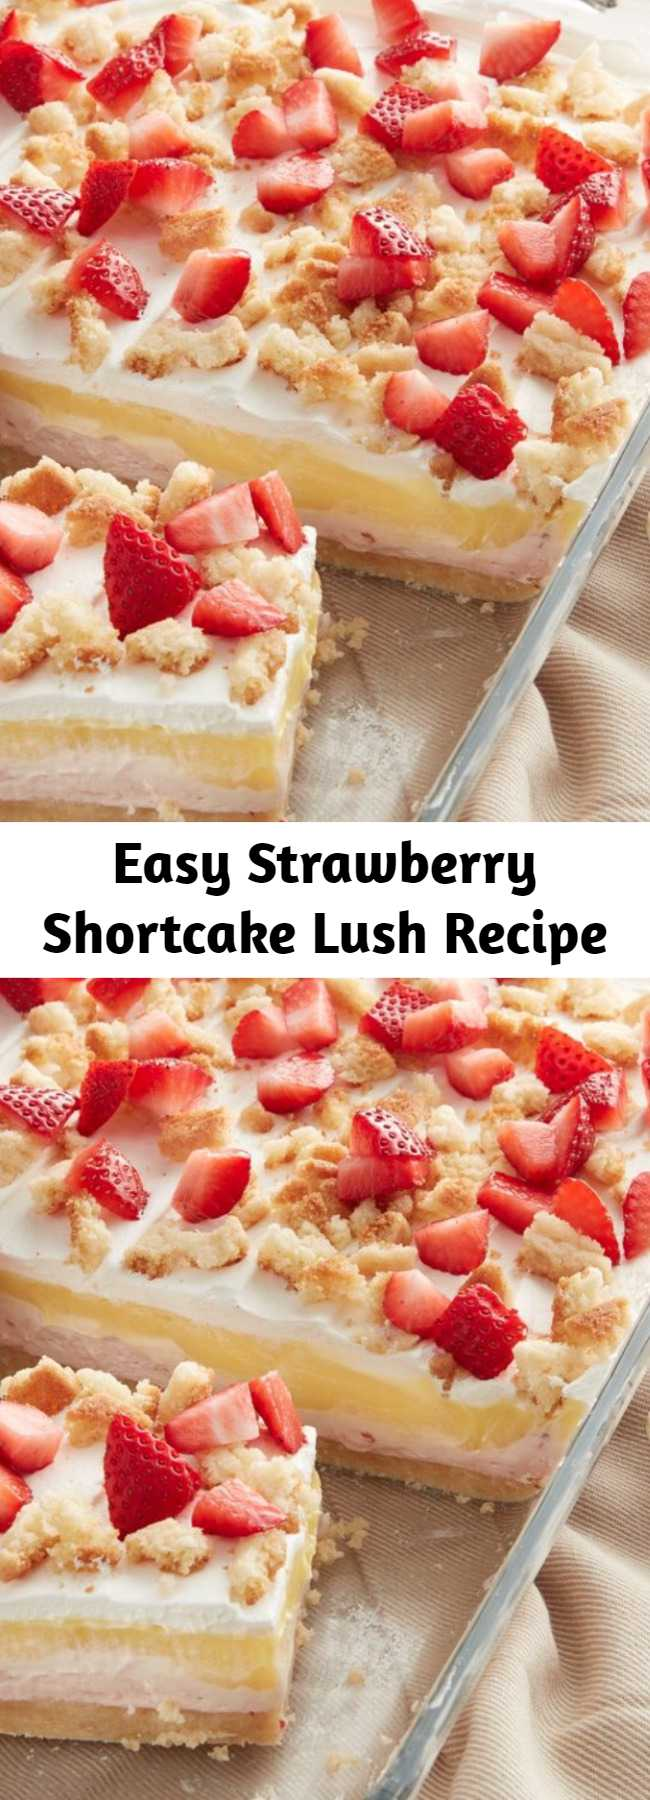 Easy Strawberry Shortcake Lush Recipe - Strawberry shortcake gets a fun makeover that's perfect for sharing with a crowd. With a sugar cookie crust, cool layers of sweet strawberry cream cheese, vanilla pudding and whipped topping, plus a finishing sprinkle of fresh strawberries, it's summer in a dessert! #dessert #summer